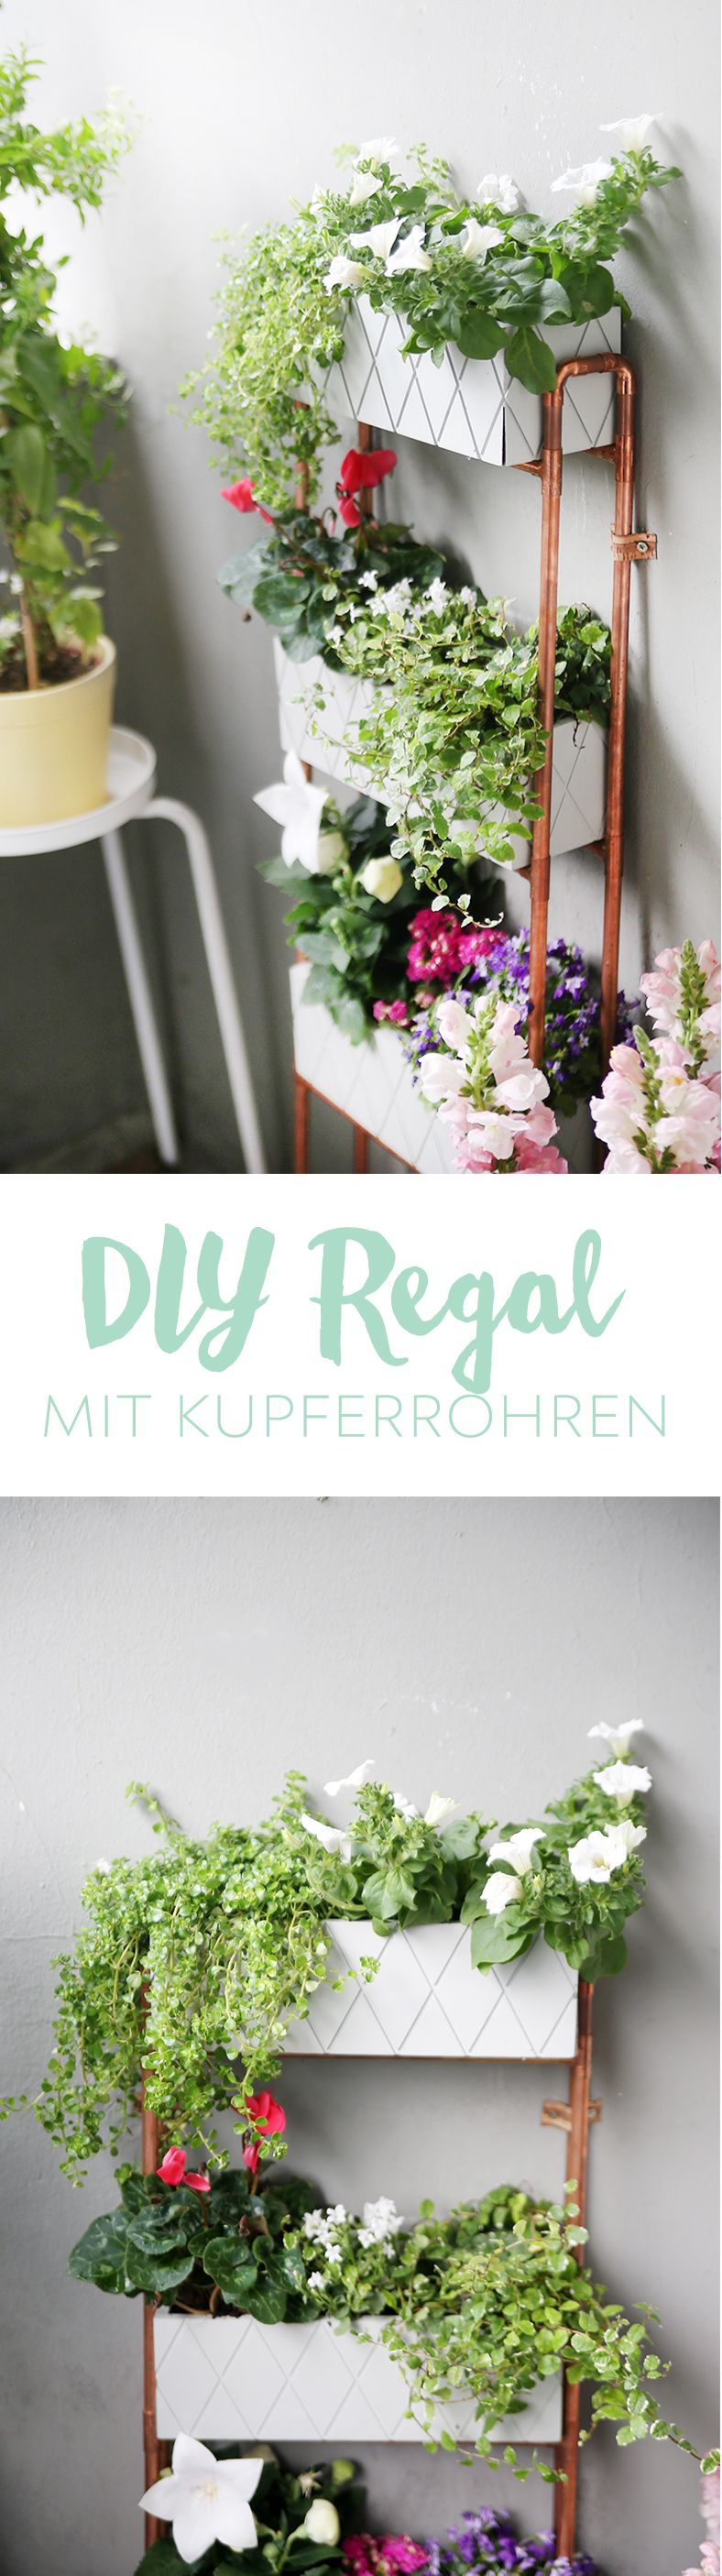 diy f r kleine balkons pflanzregal aus kupferrohren selbstgemacht kupferrohr diy ideen und. Black Bedroom Furniture Sets. Home Design Ideas